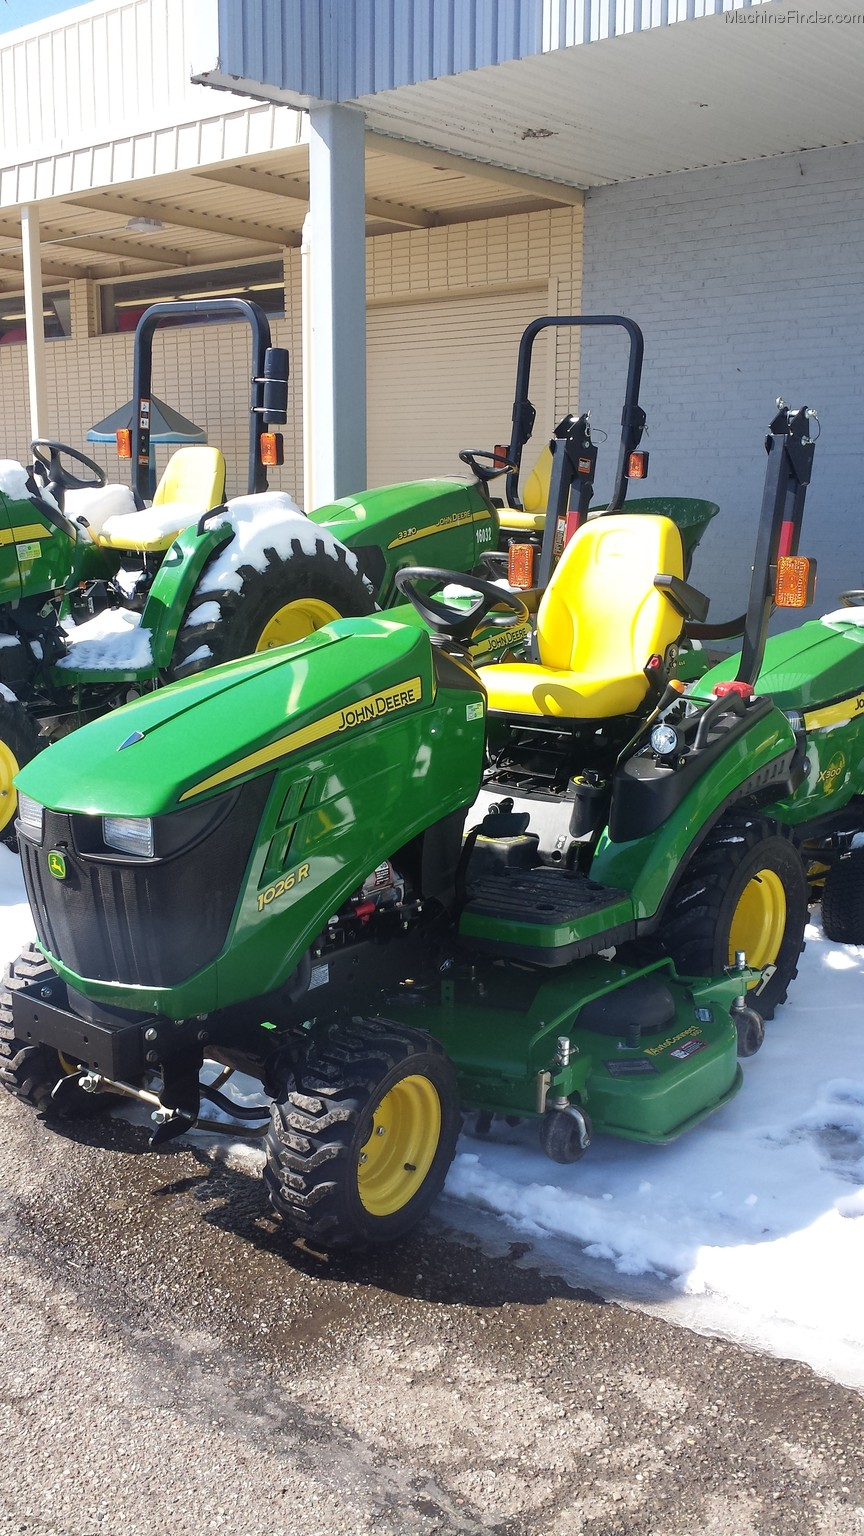 2012 john deere 1026r tractors compact 1 40hp john deere machinefinder. Black Bedroom Furniture Sets. Home Design Ideas